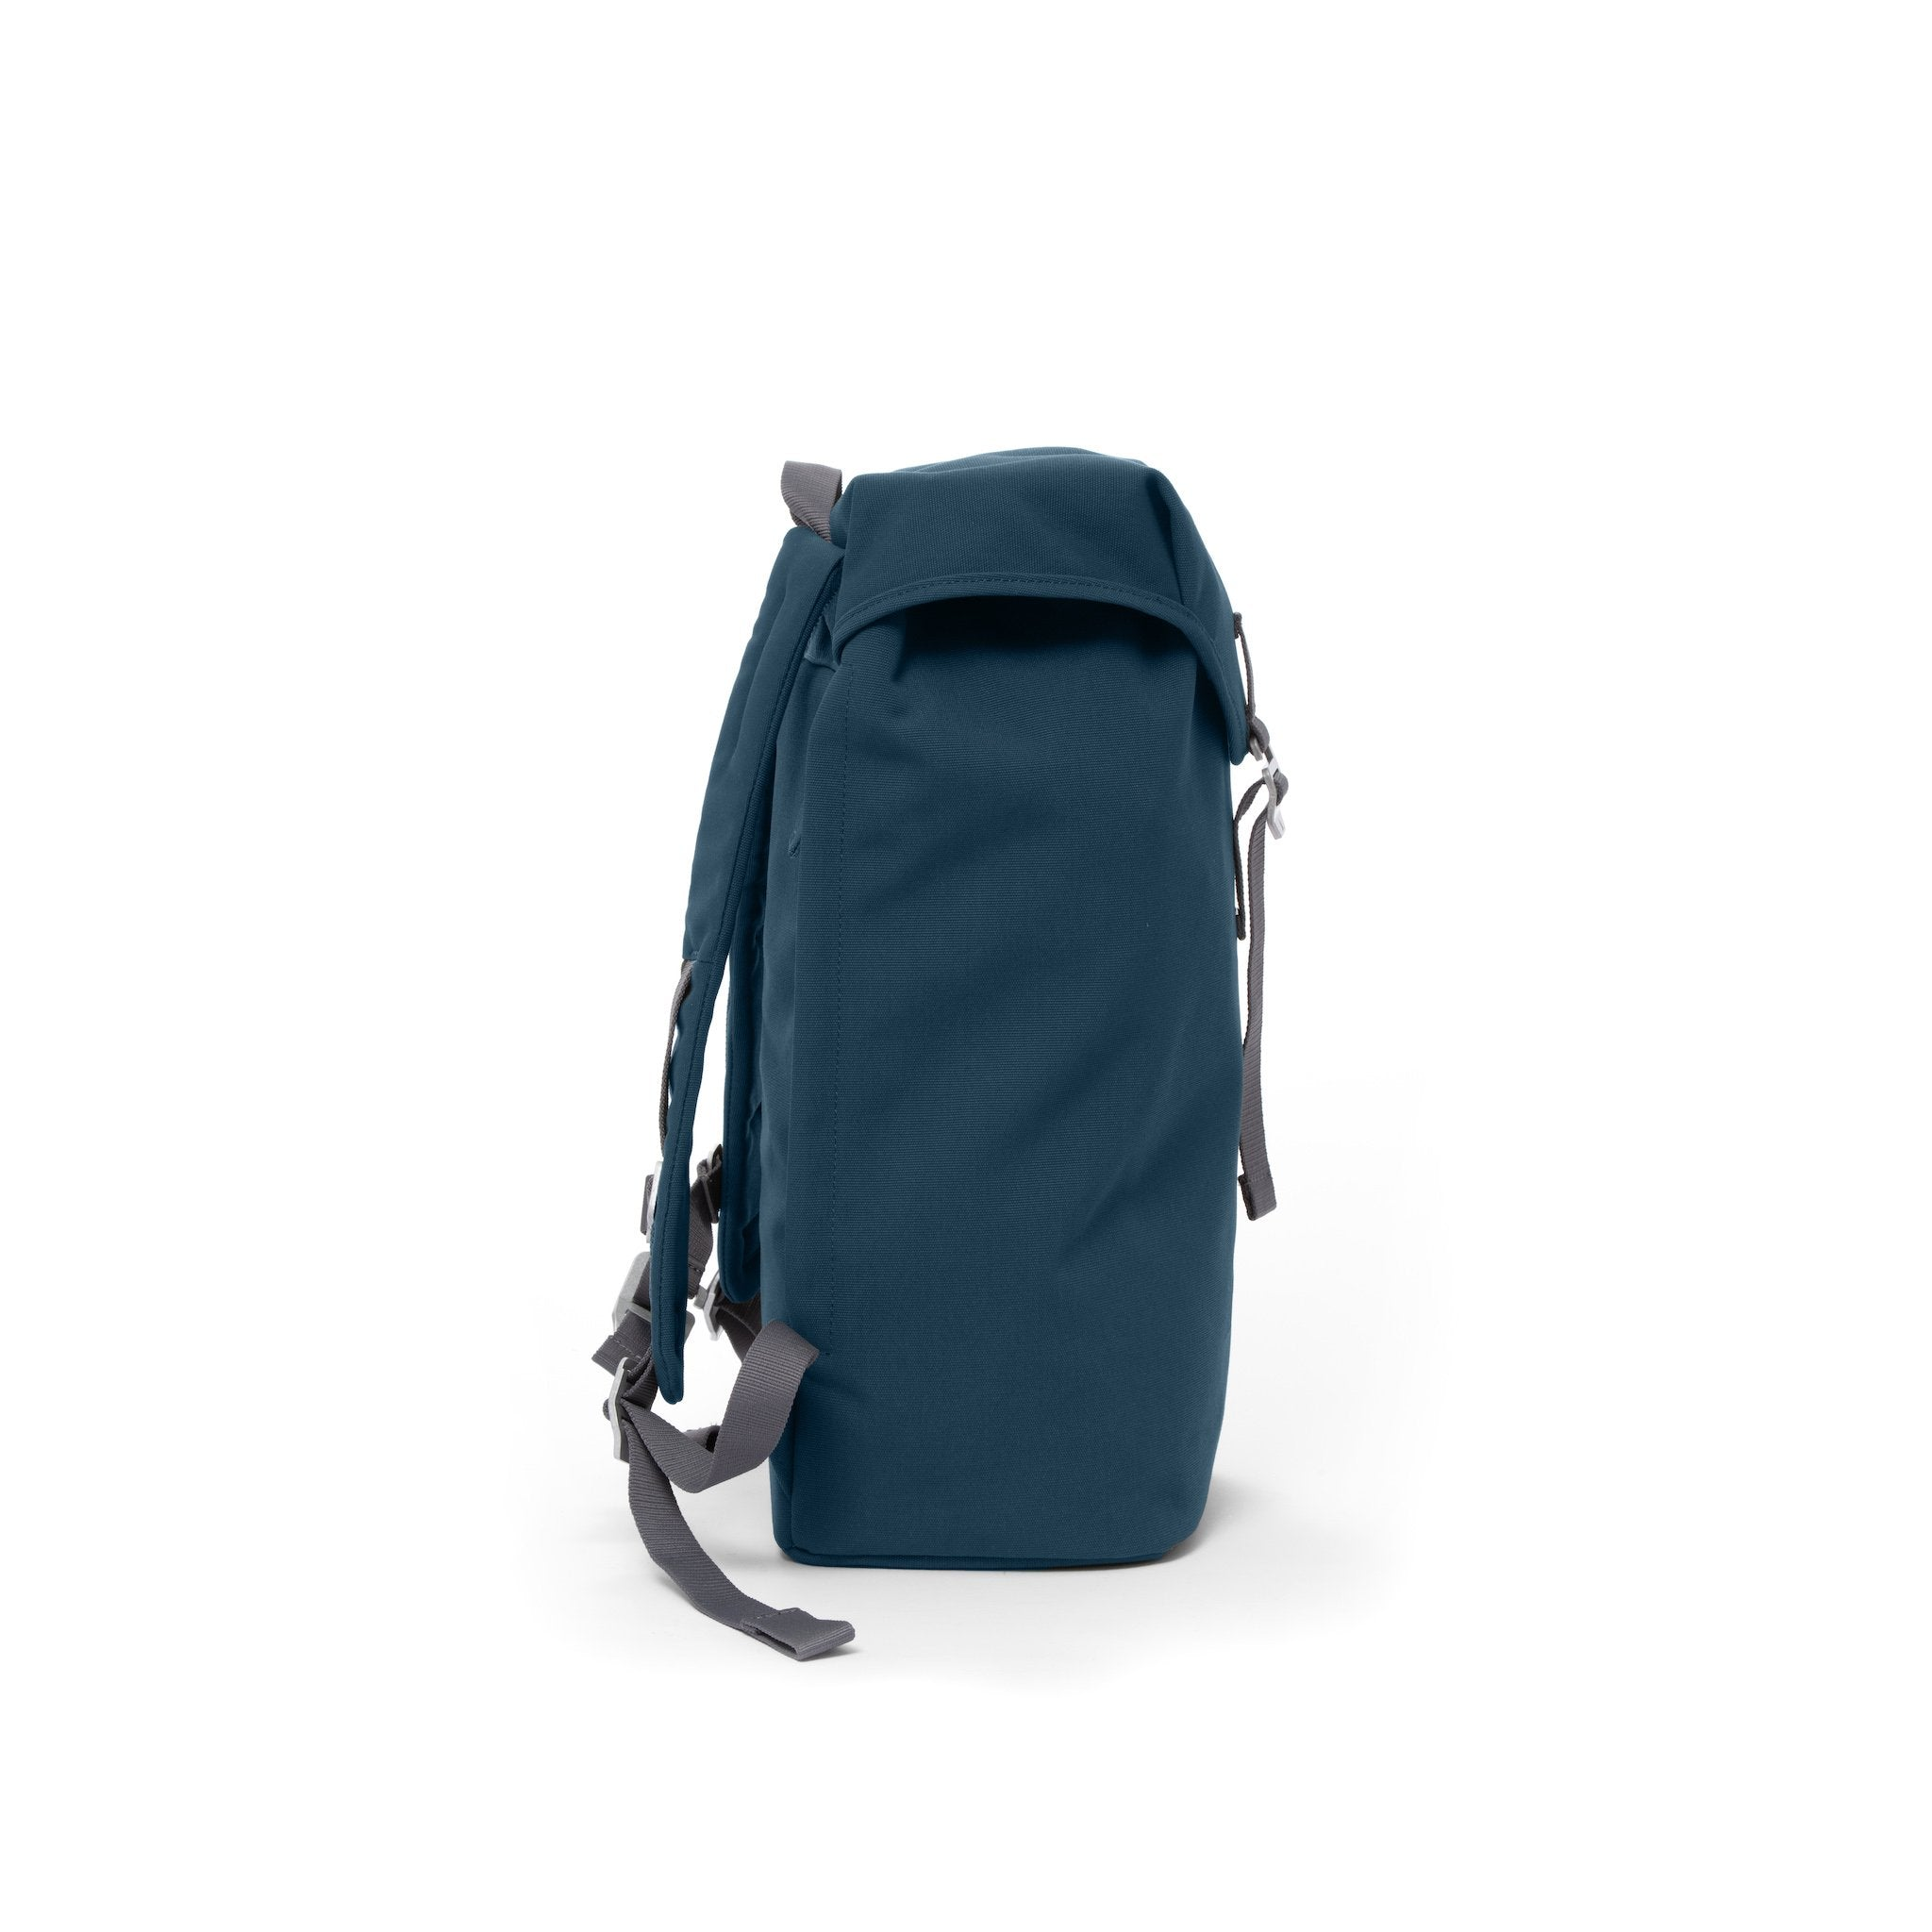 Blue waterproof backpack with flap and metal buckle.